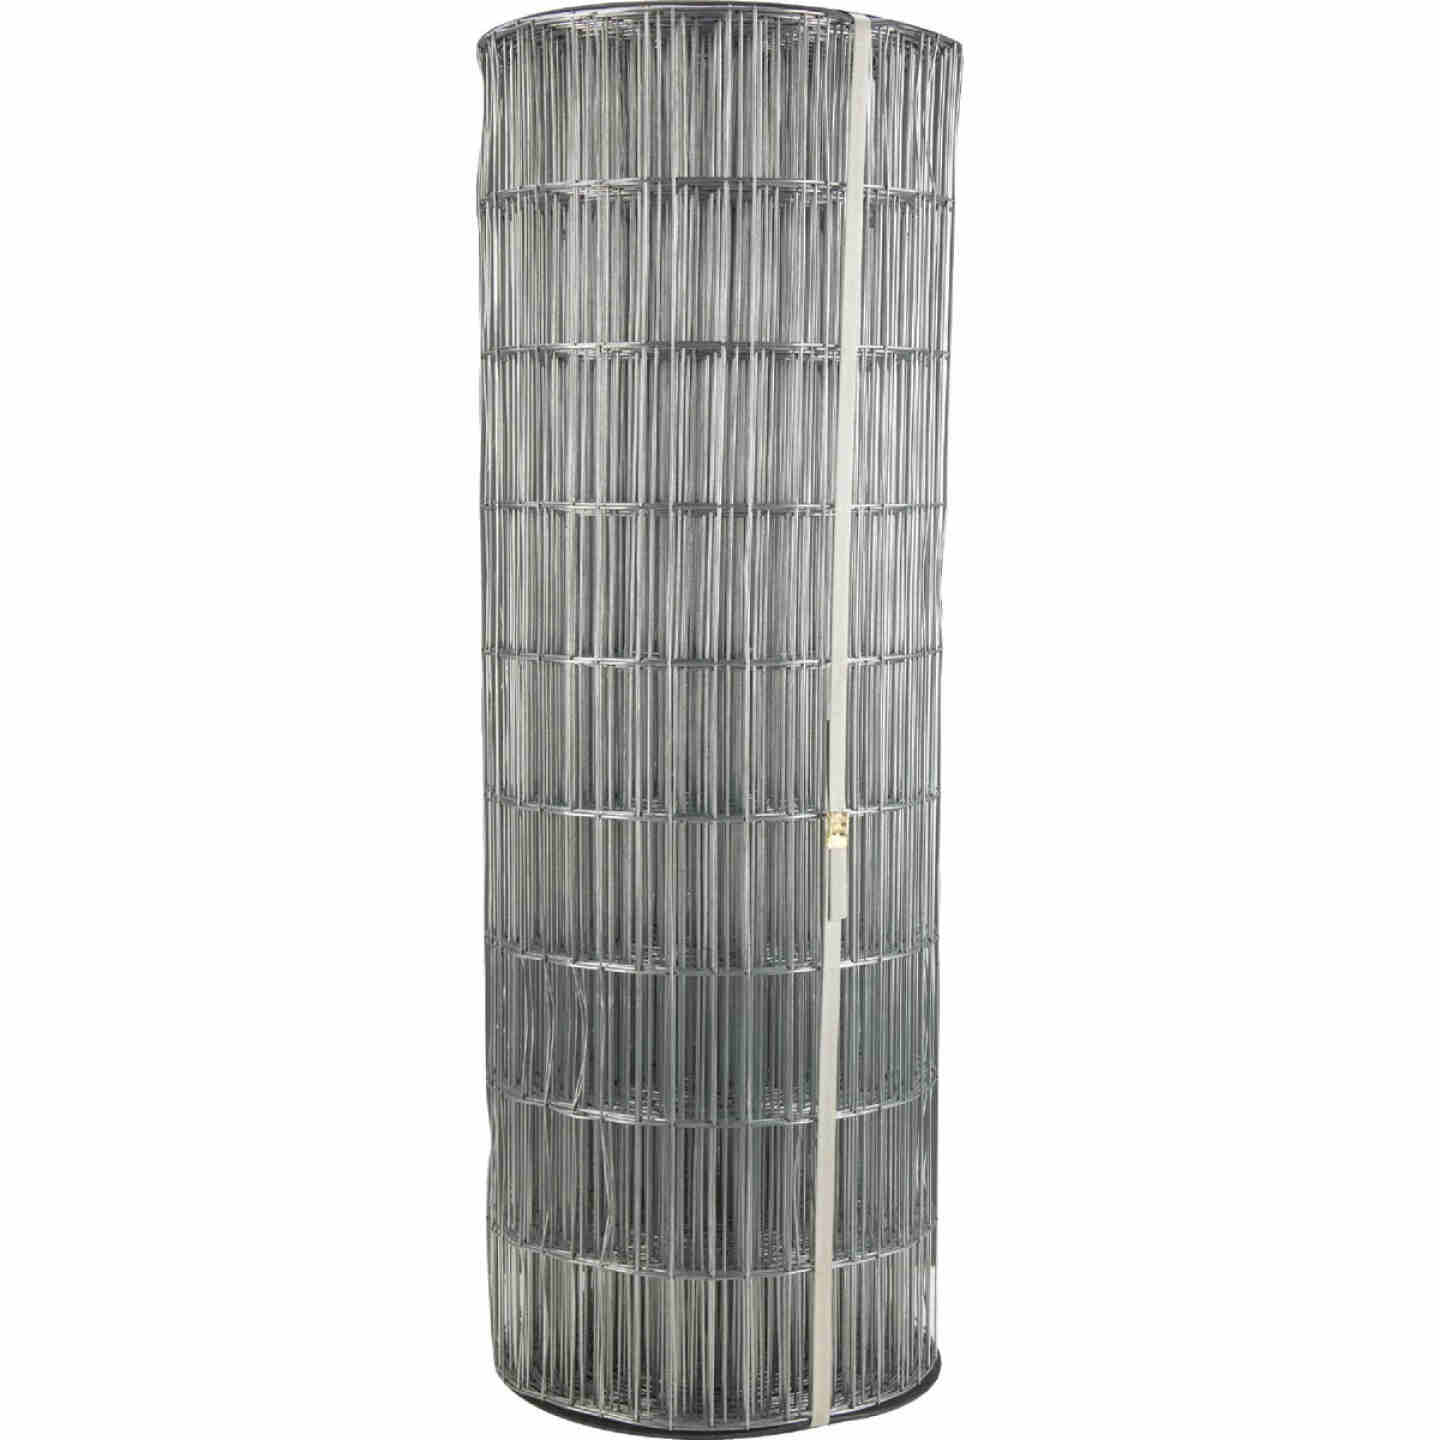 60 In. H. x 100 Ft. L. (2x4) Galvanized Welded Wire Fence Image 1